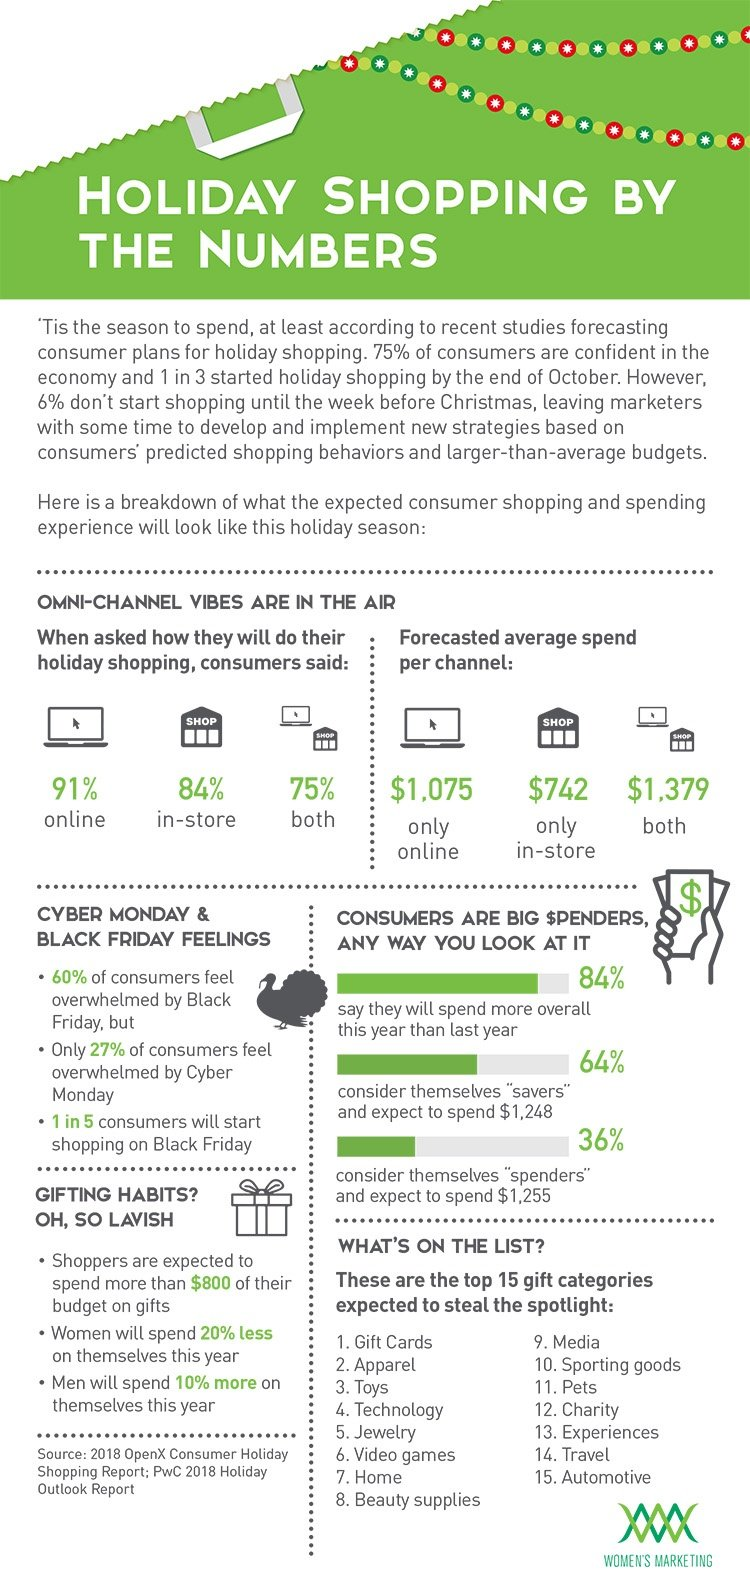 HolidayShoppingByTheNumbers_Infographic